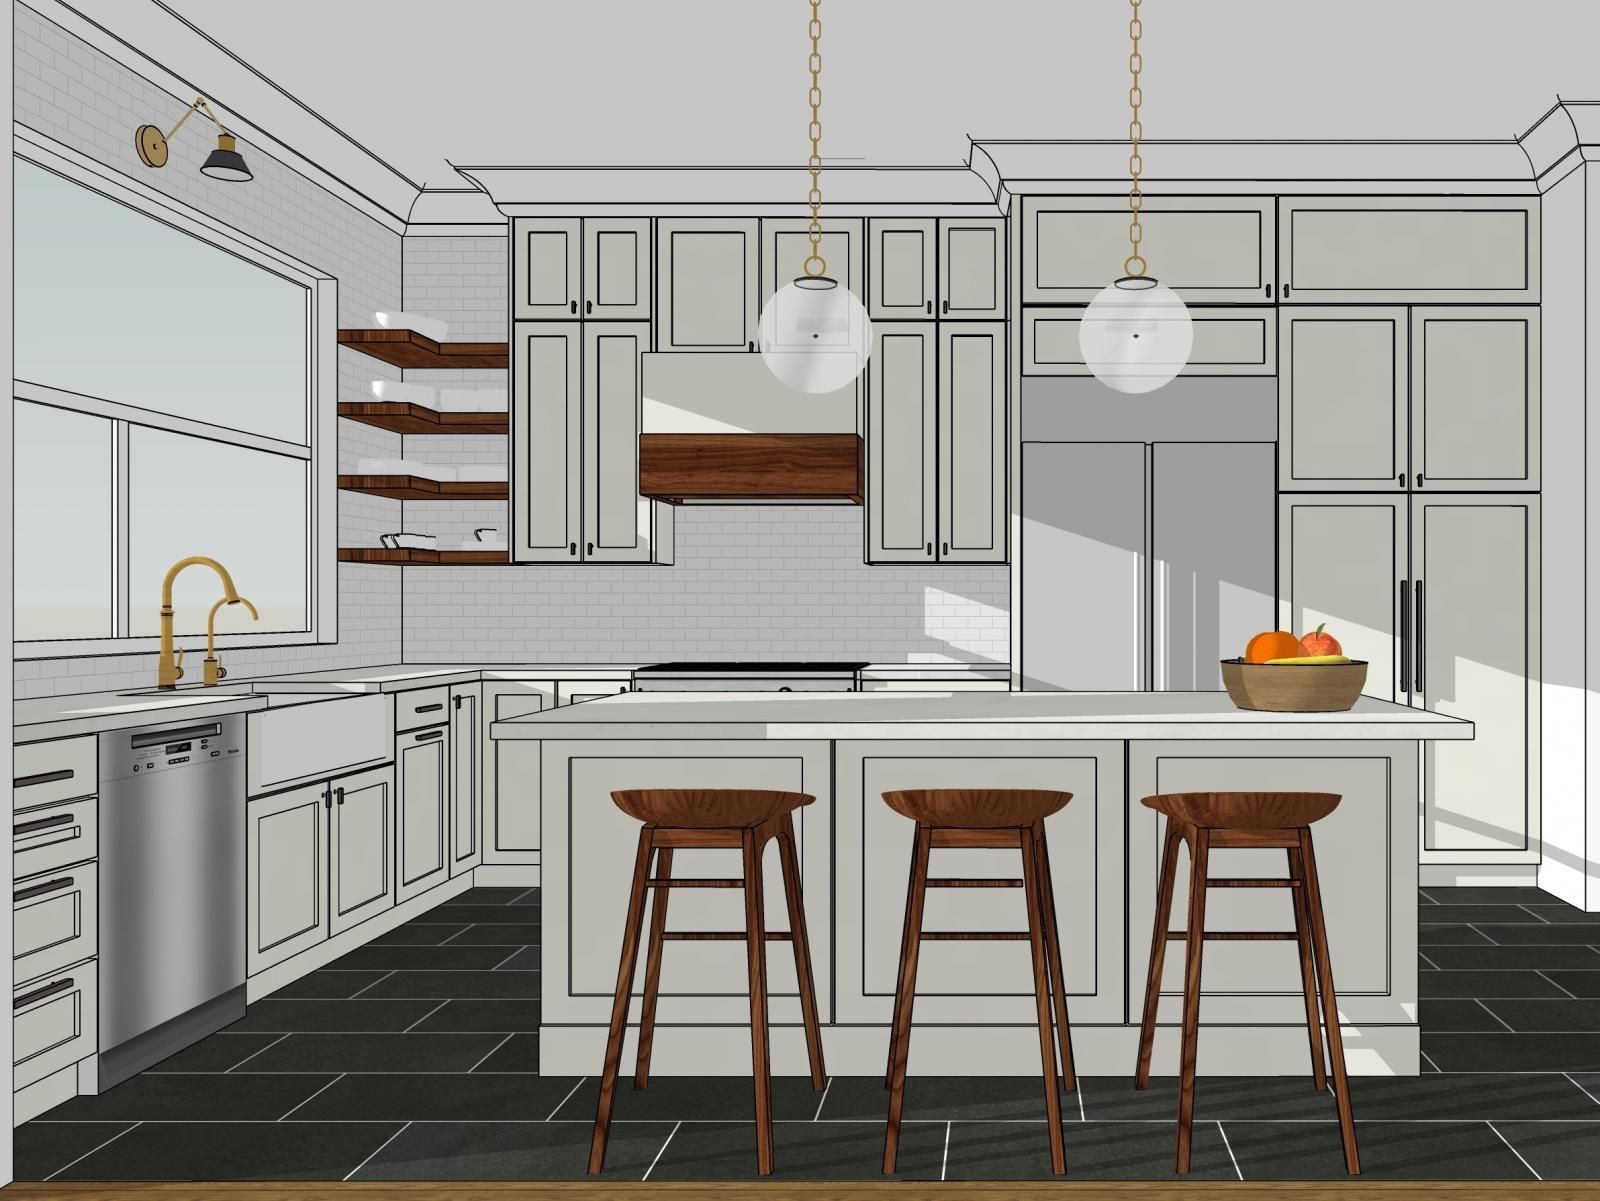 Kitchen And Bathroom Design Software In 2020 Interior Design